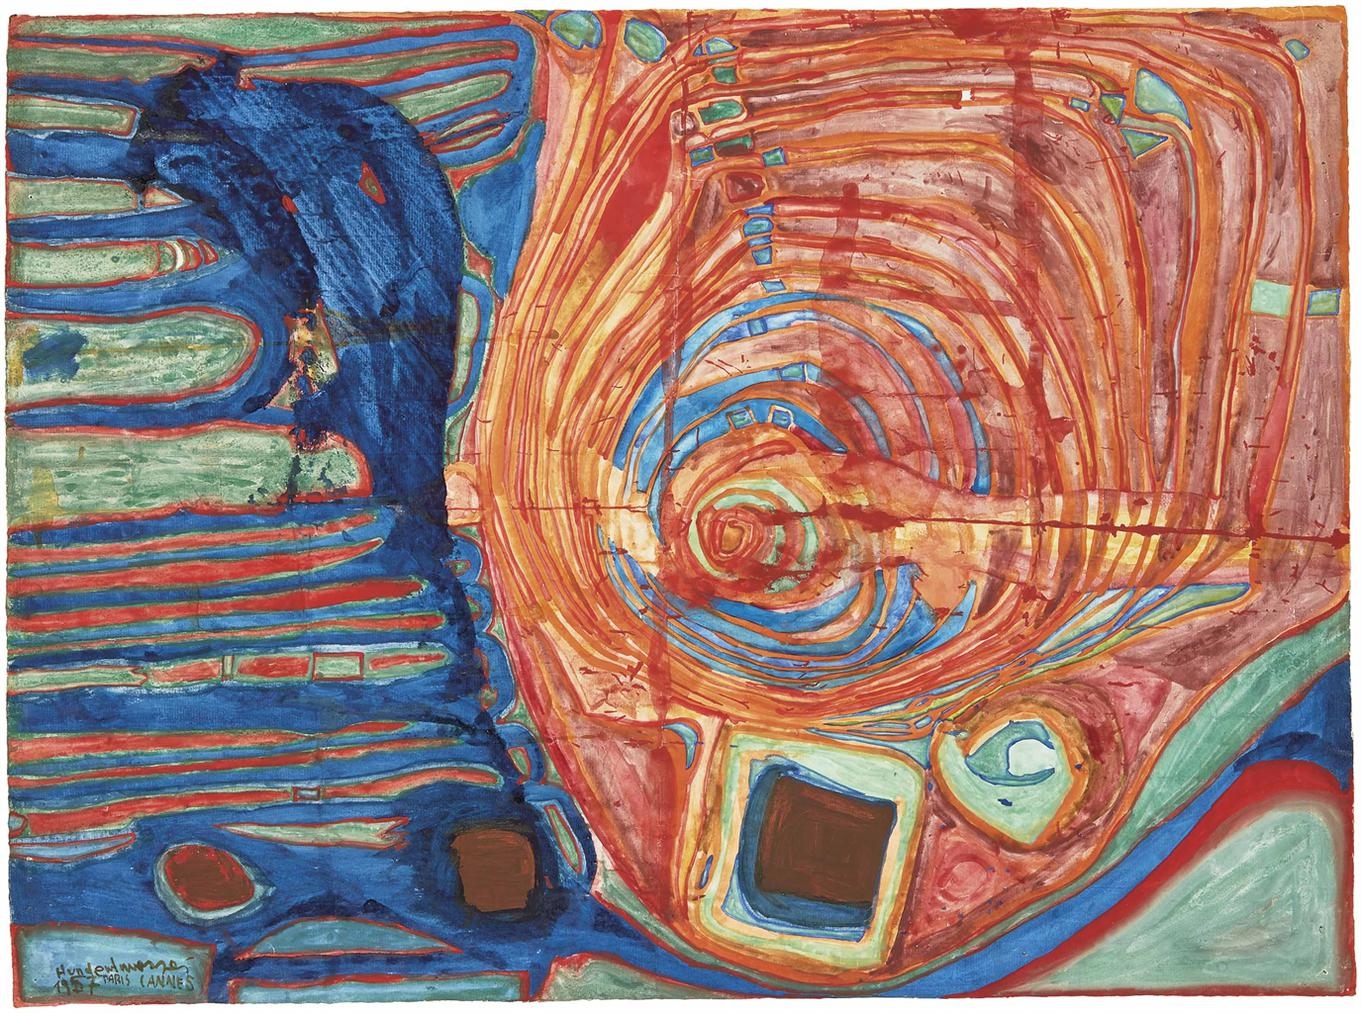 Friedensreich Hundertwasser-Soleil Enjolive Par Les Symptomes De La Maladie (The Symptoms Of The Illness Beautify The Sun)-1957